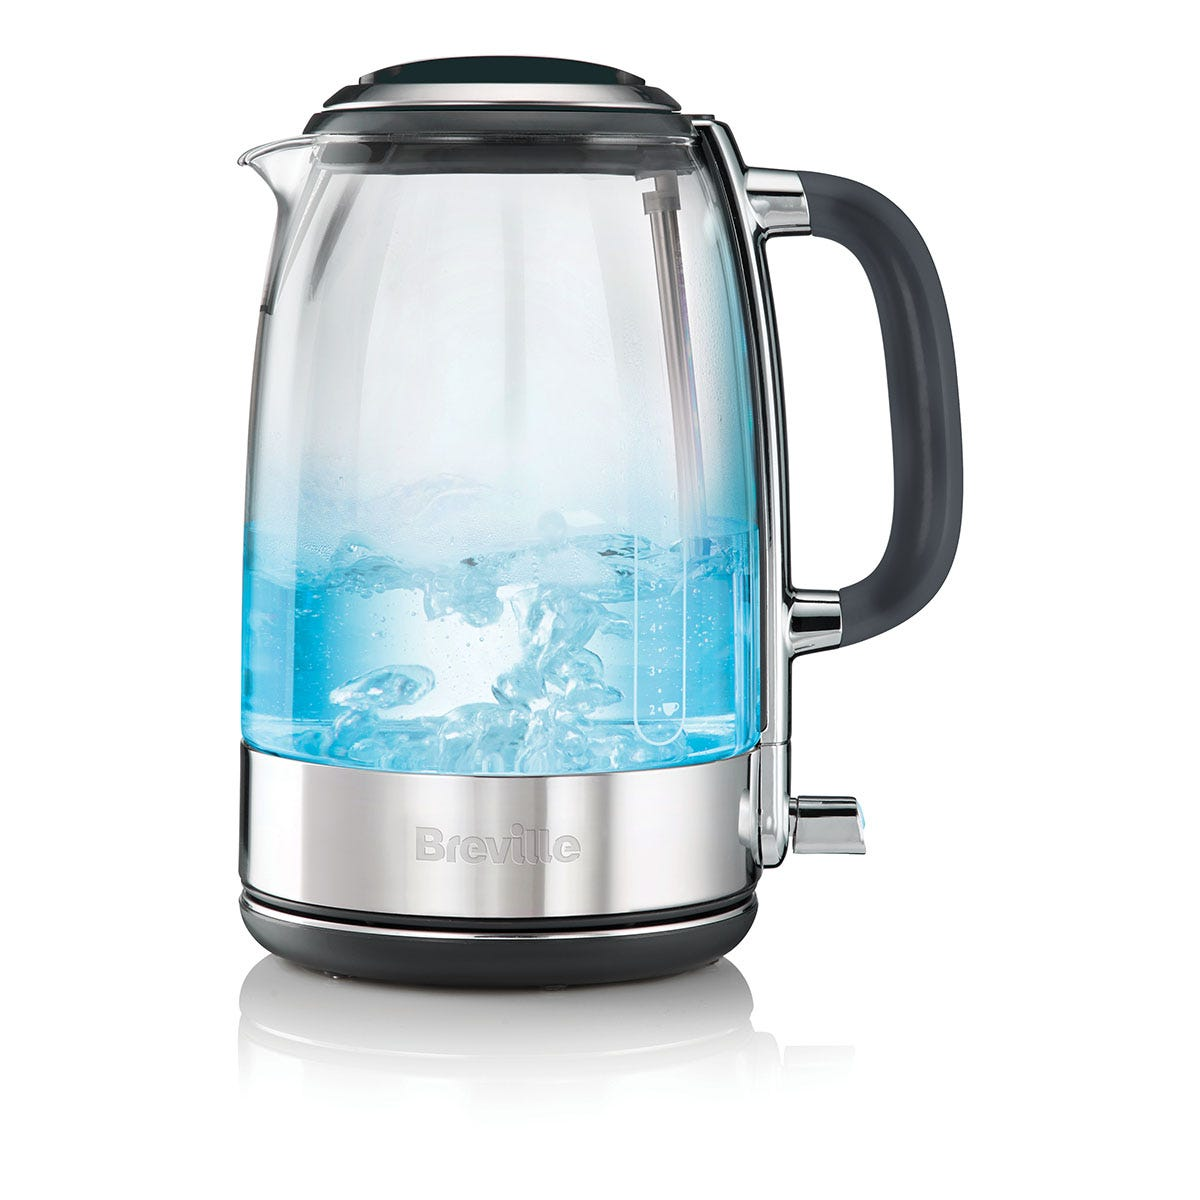 Breville VKT071 Crystal Clear Glass Jug Kettle - Clear & Stainless Steel